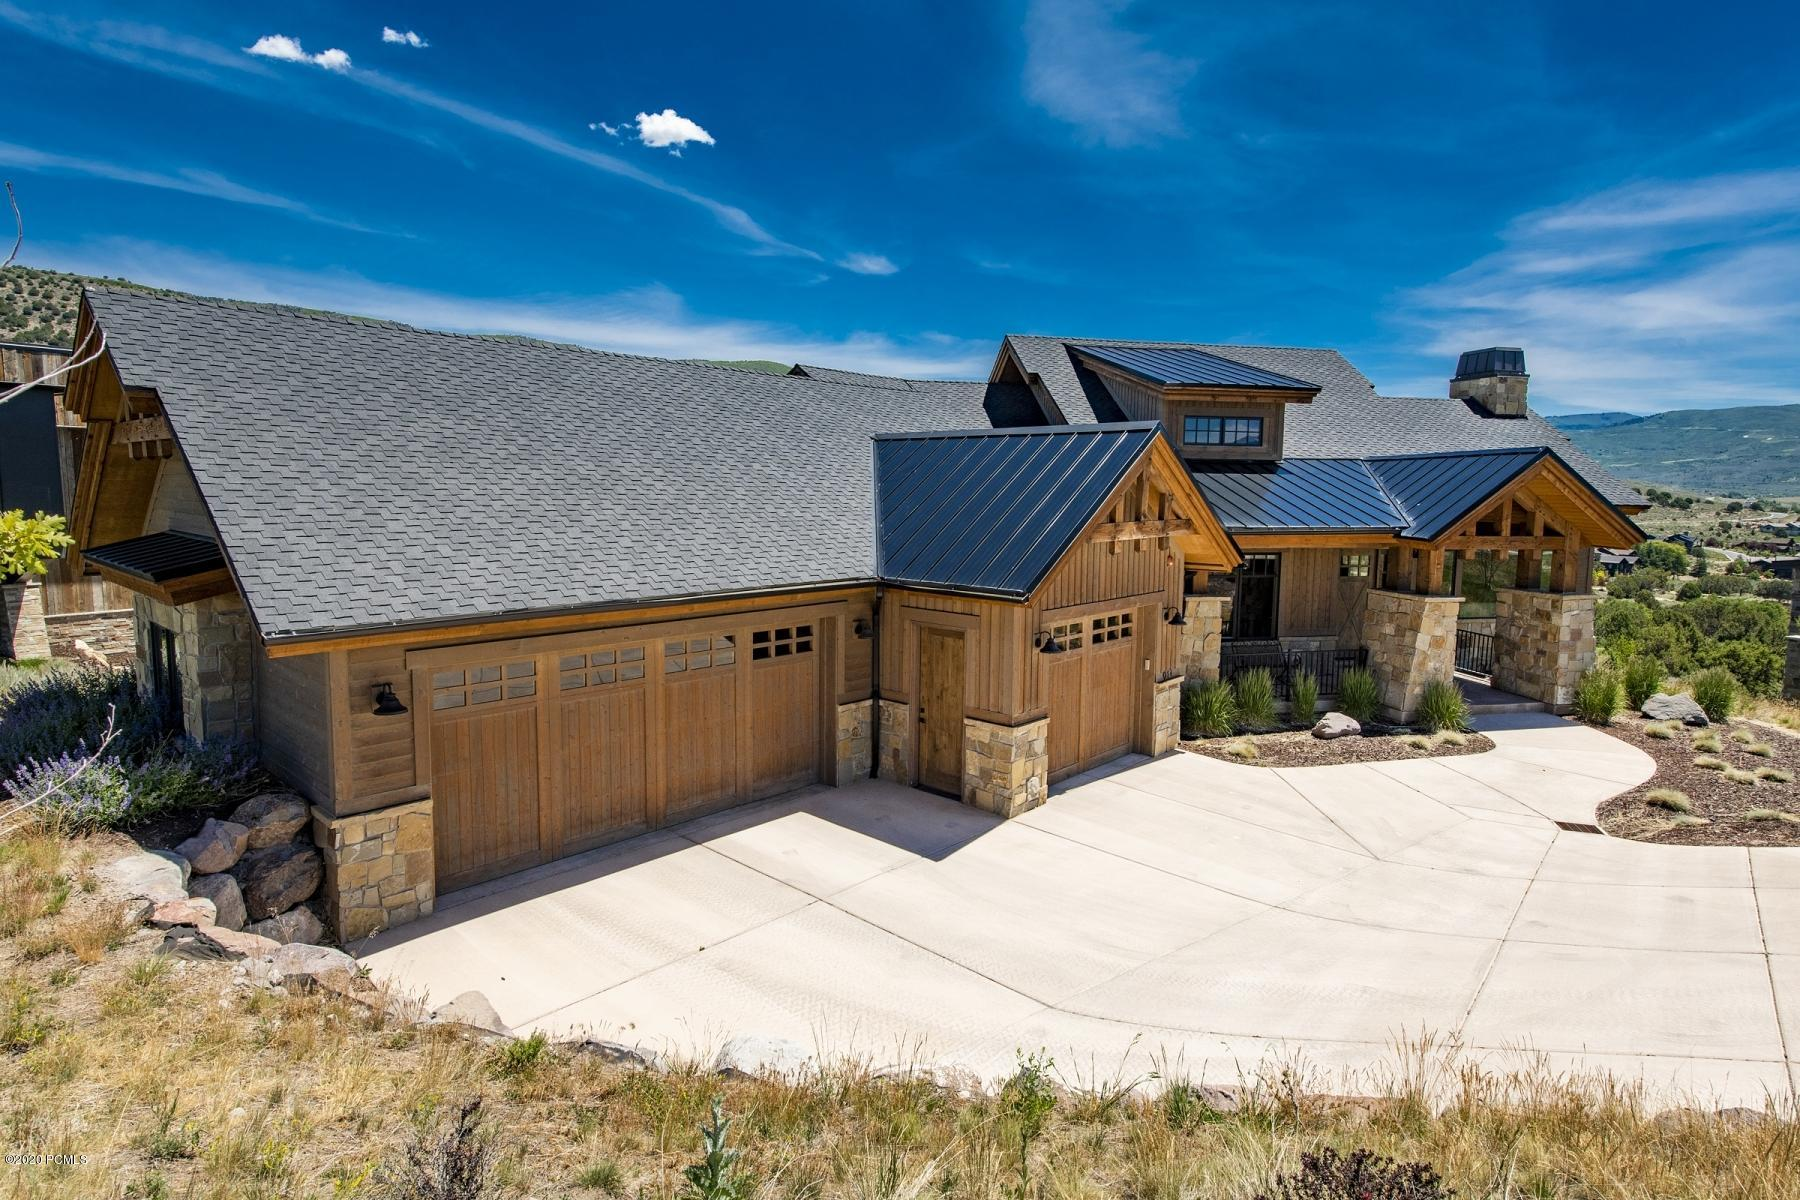 914 Explorer Peak Dr (Lot 421), Heber City, Utah 84032, 4 Bedrooms Bedrooms, ,4 BathroomsBathrooms,Single Family,For Sale,Explorer Peak Dr (Lot 421),12002164